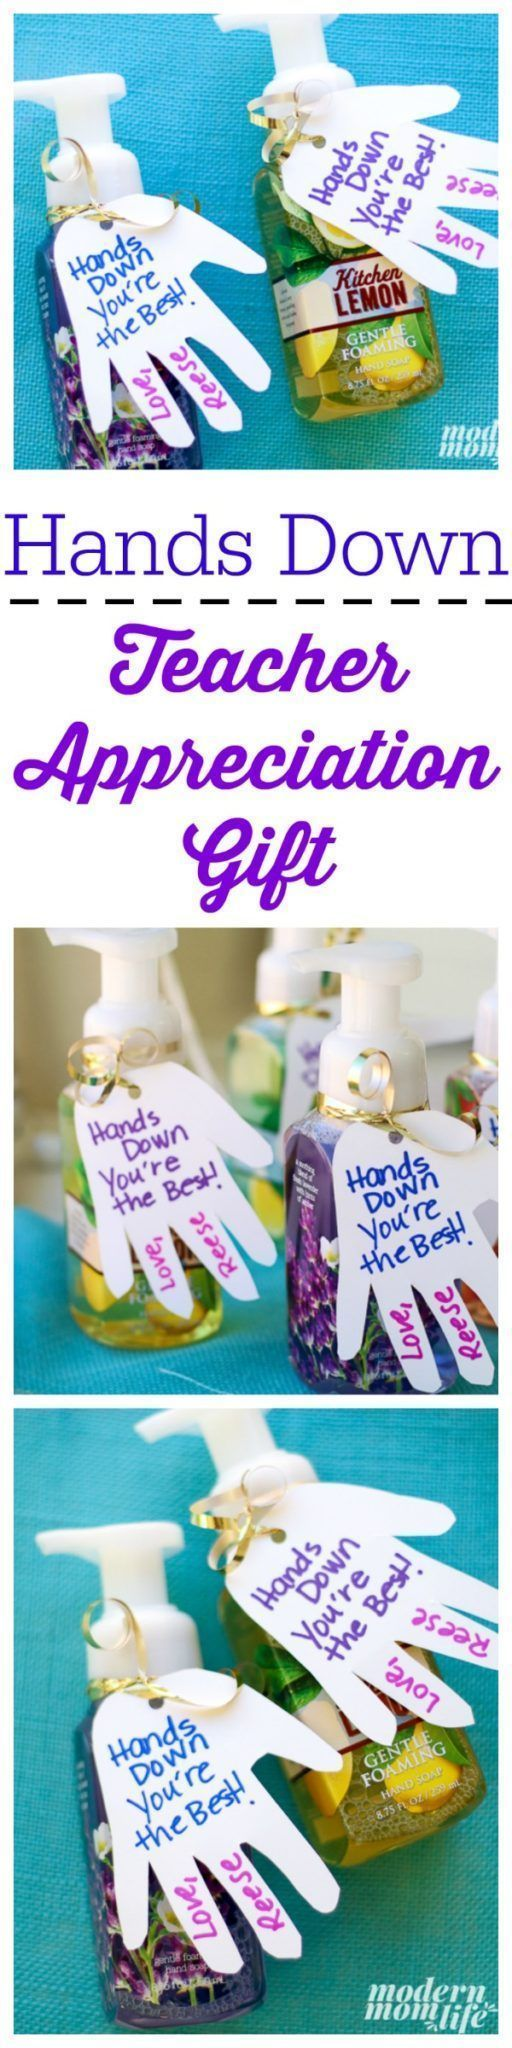 This Hands Down Teacher Appreciation Gift is simple and easy to make. Makes the perfect homemade teacher gift!  via @amodernmomlife #teacherappreciationgifts #Simpleandfundecor